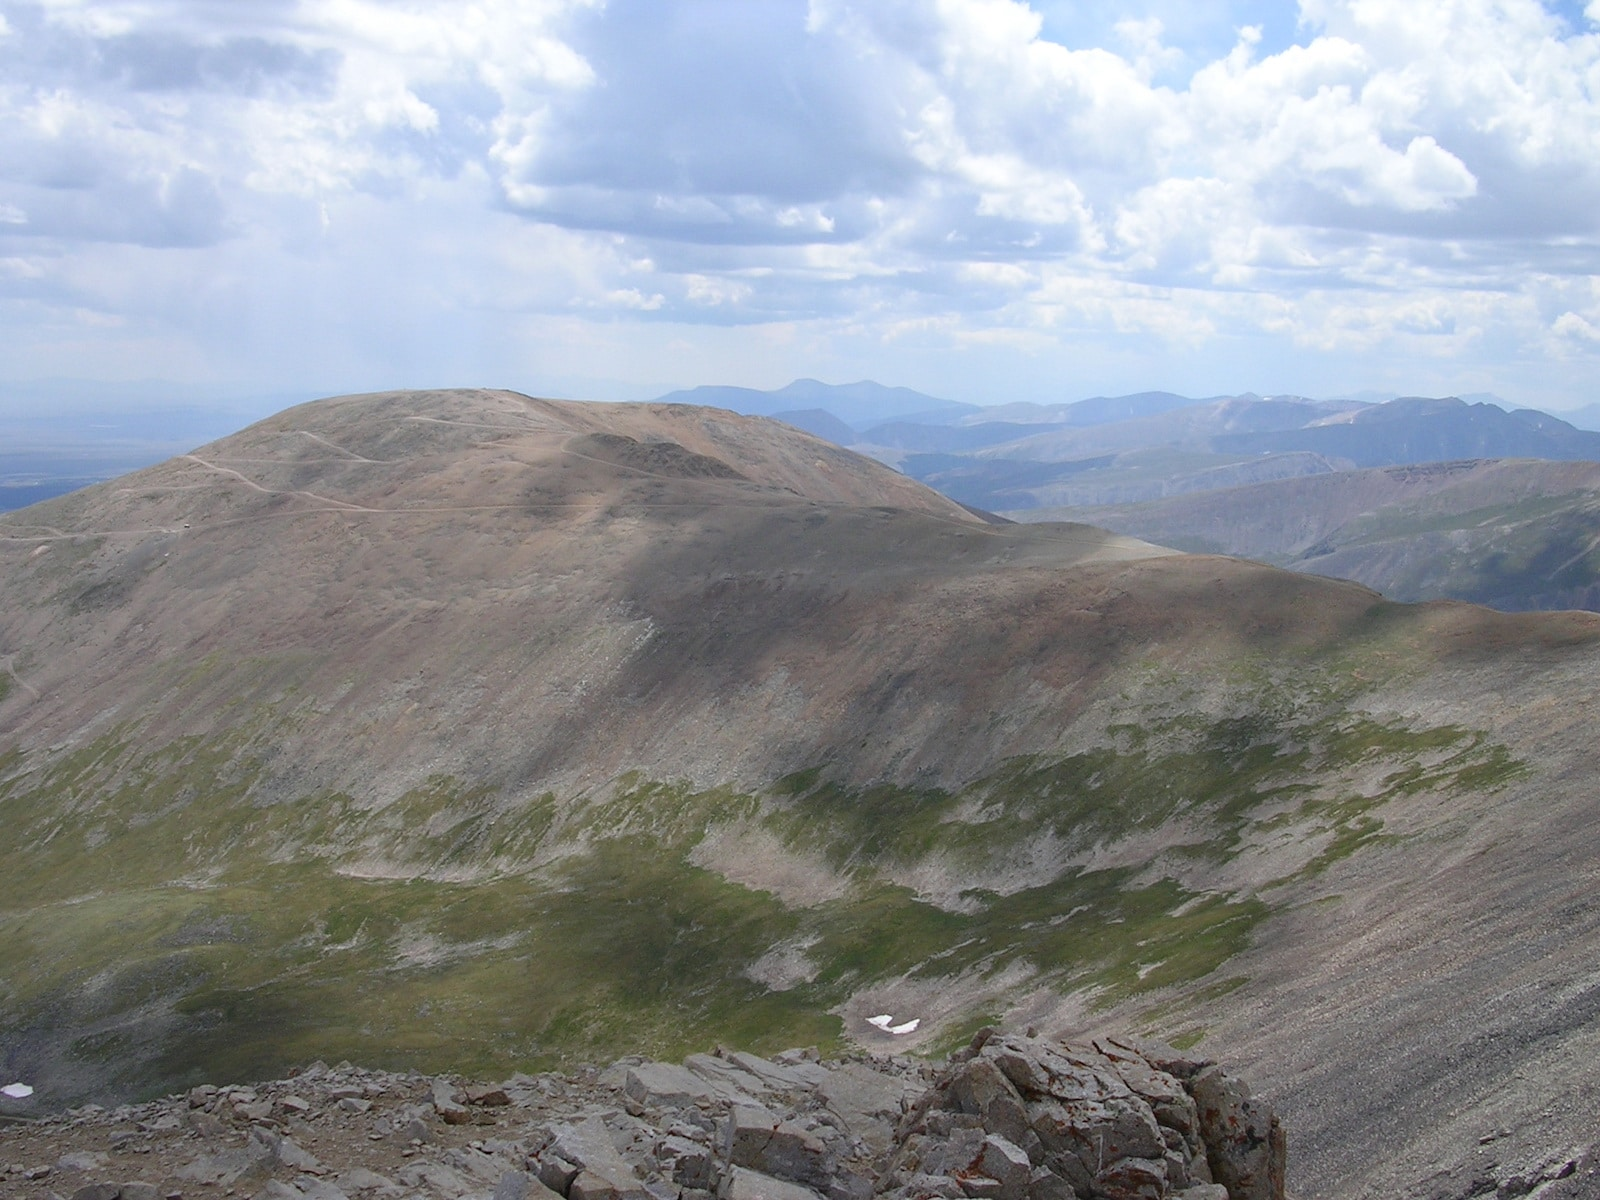 Image of Mount Bross in Colorado